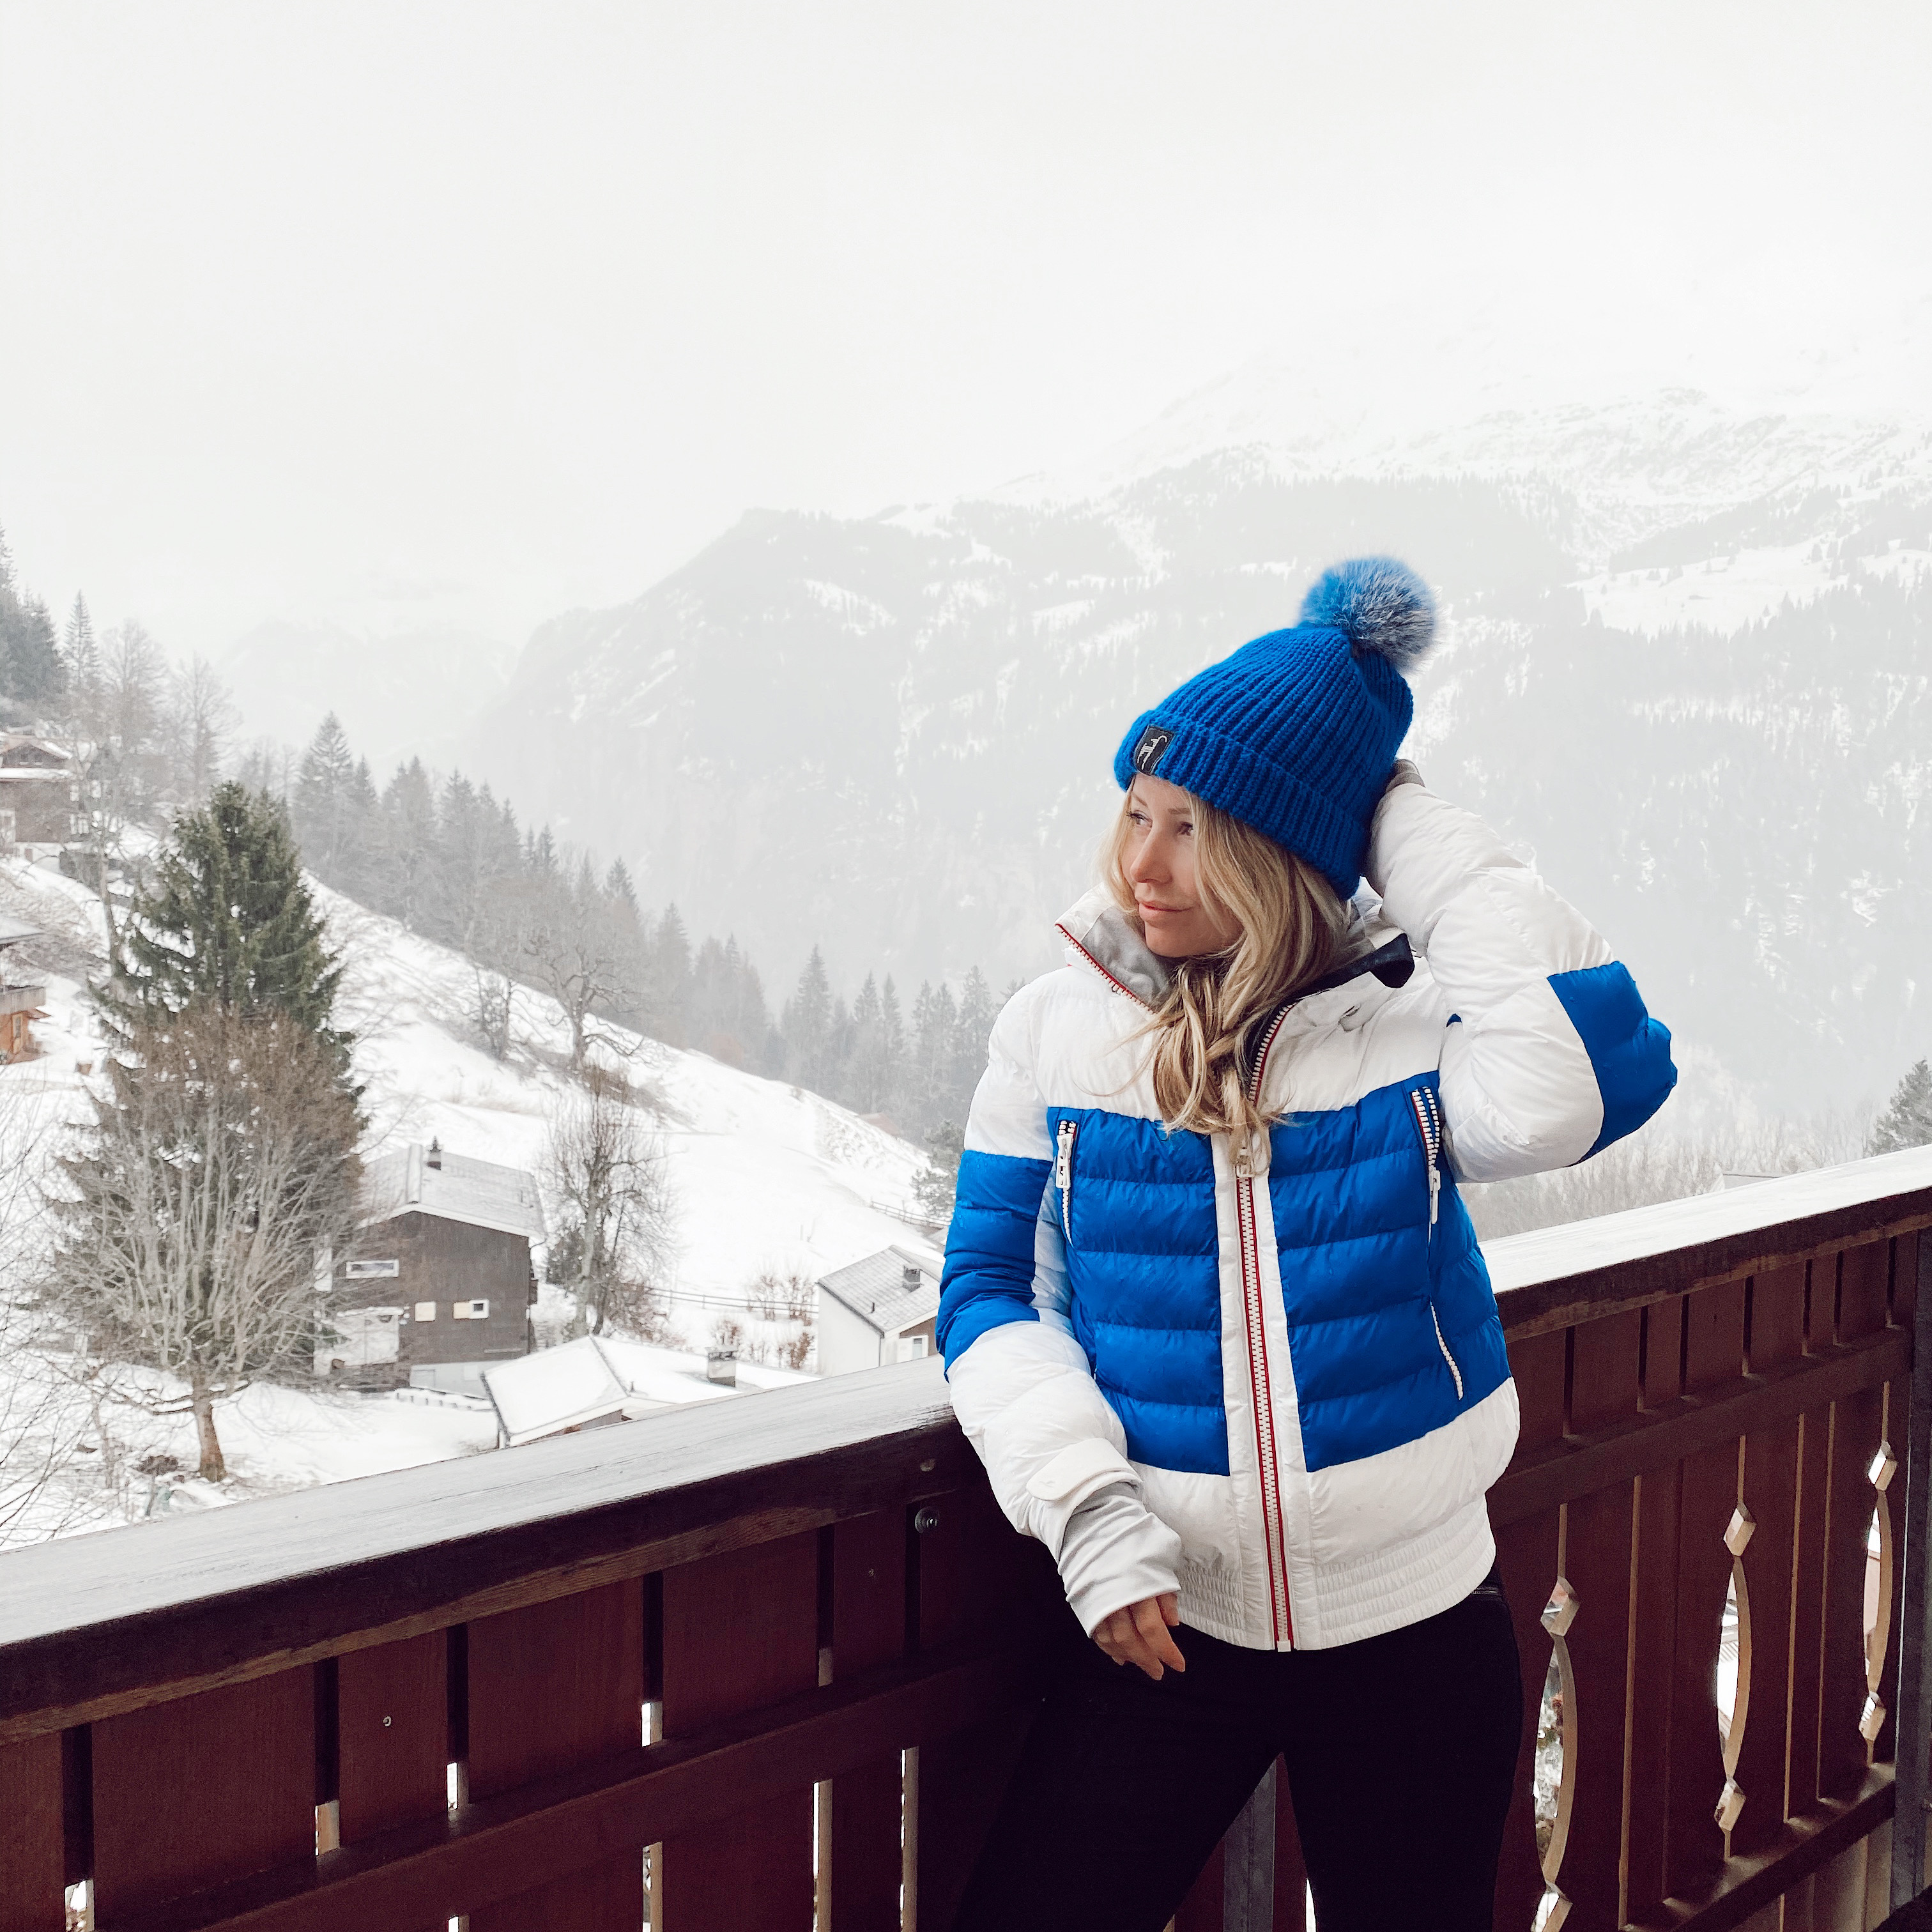 Ski holiday 2020 What to wear